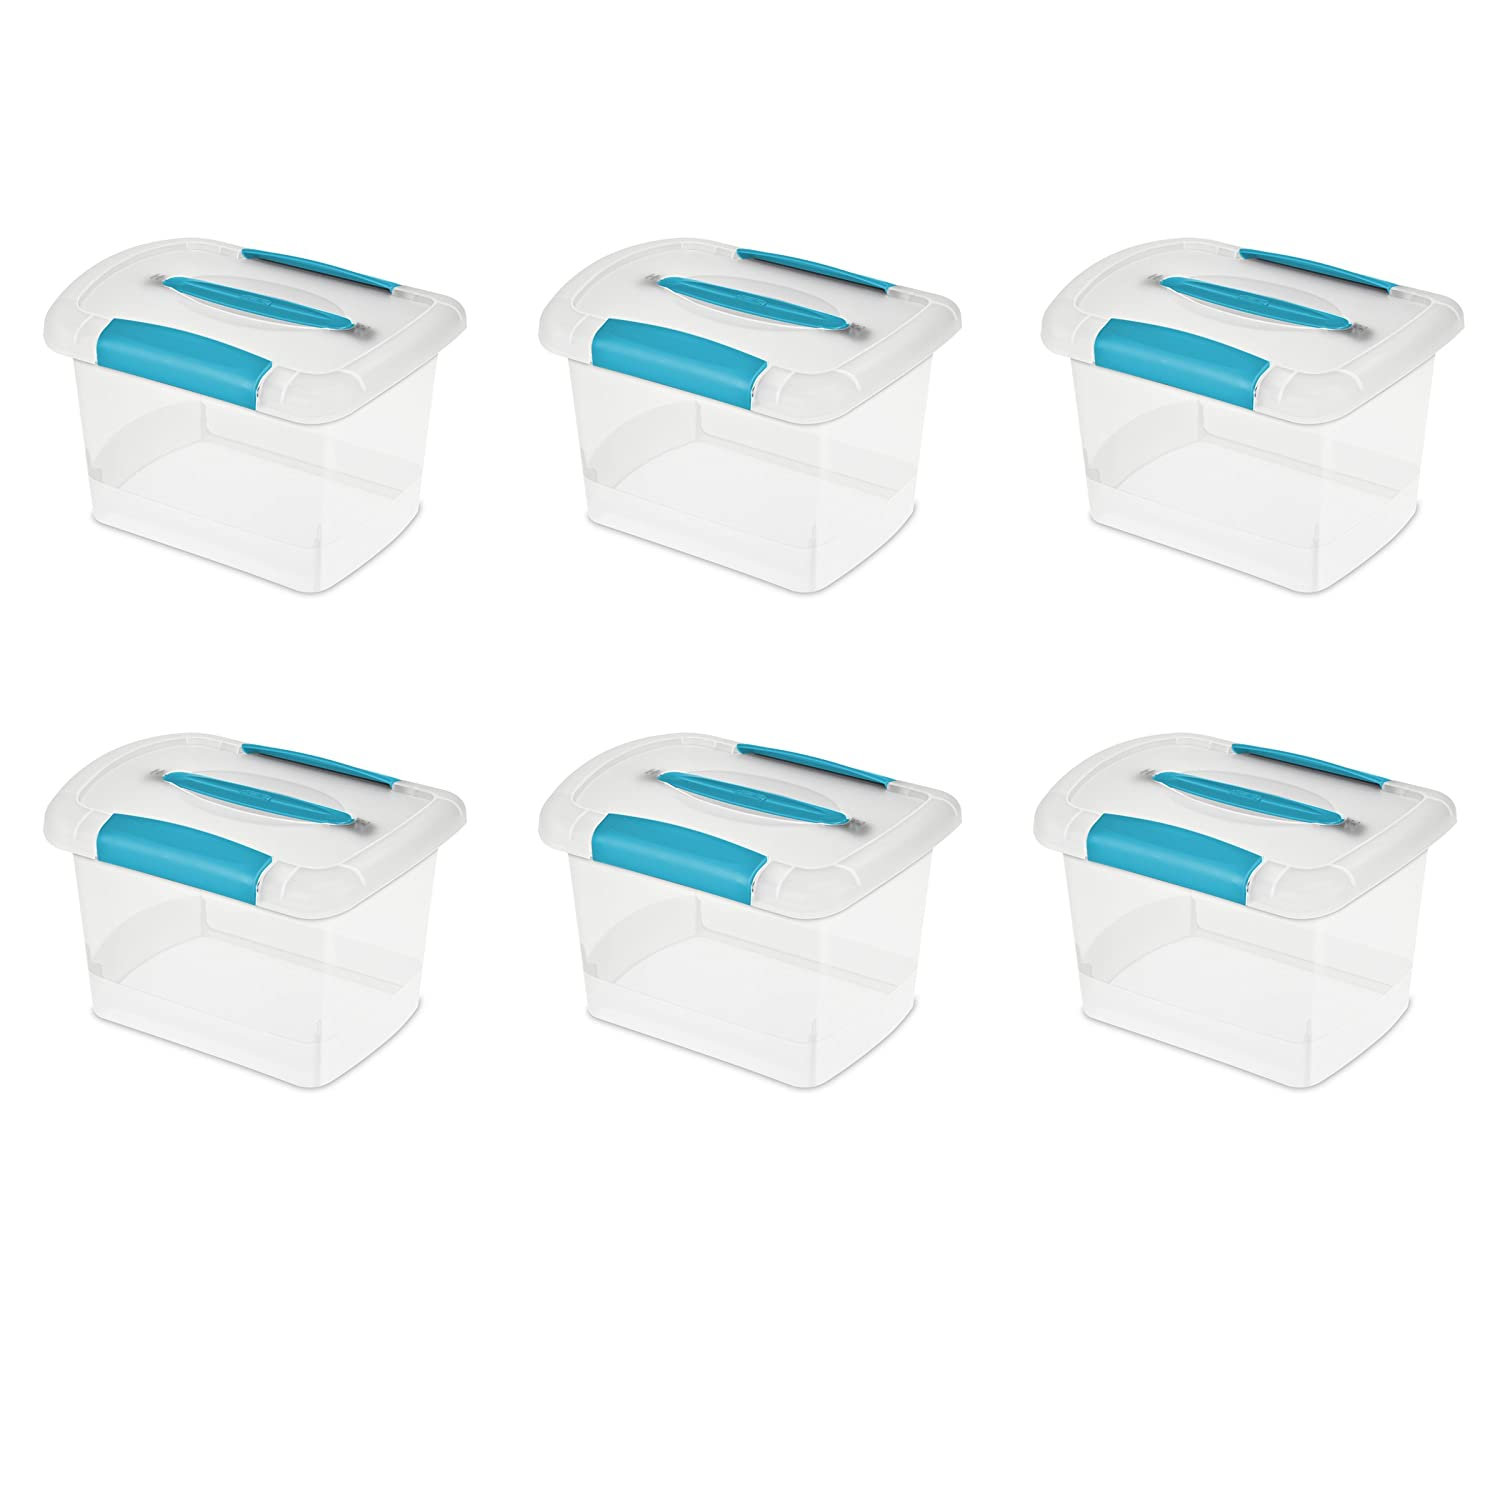 Sterilite 18728606 Small Nesting ShowOffs, Clear with Blue Aquarium Handle and Latches, 6-Pack